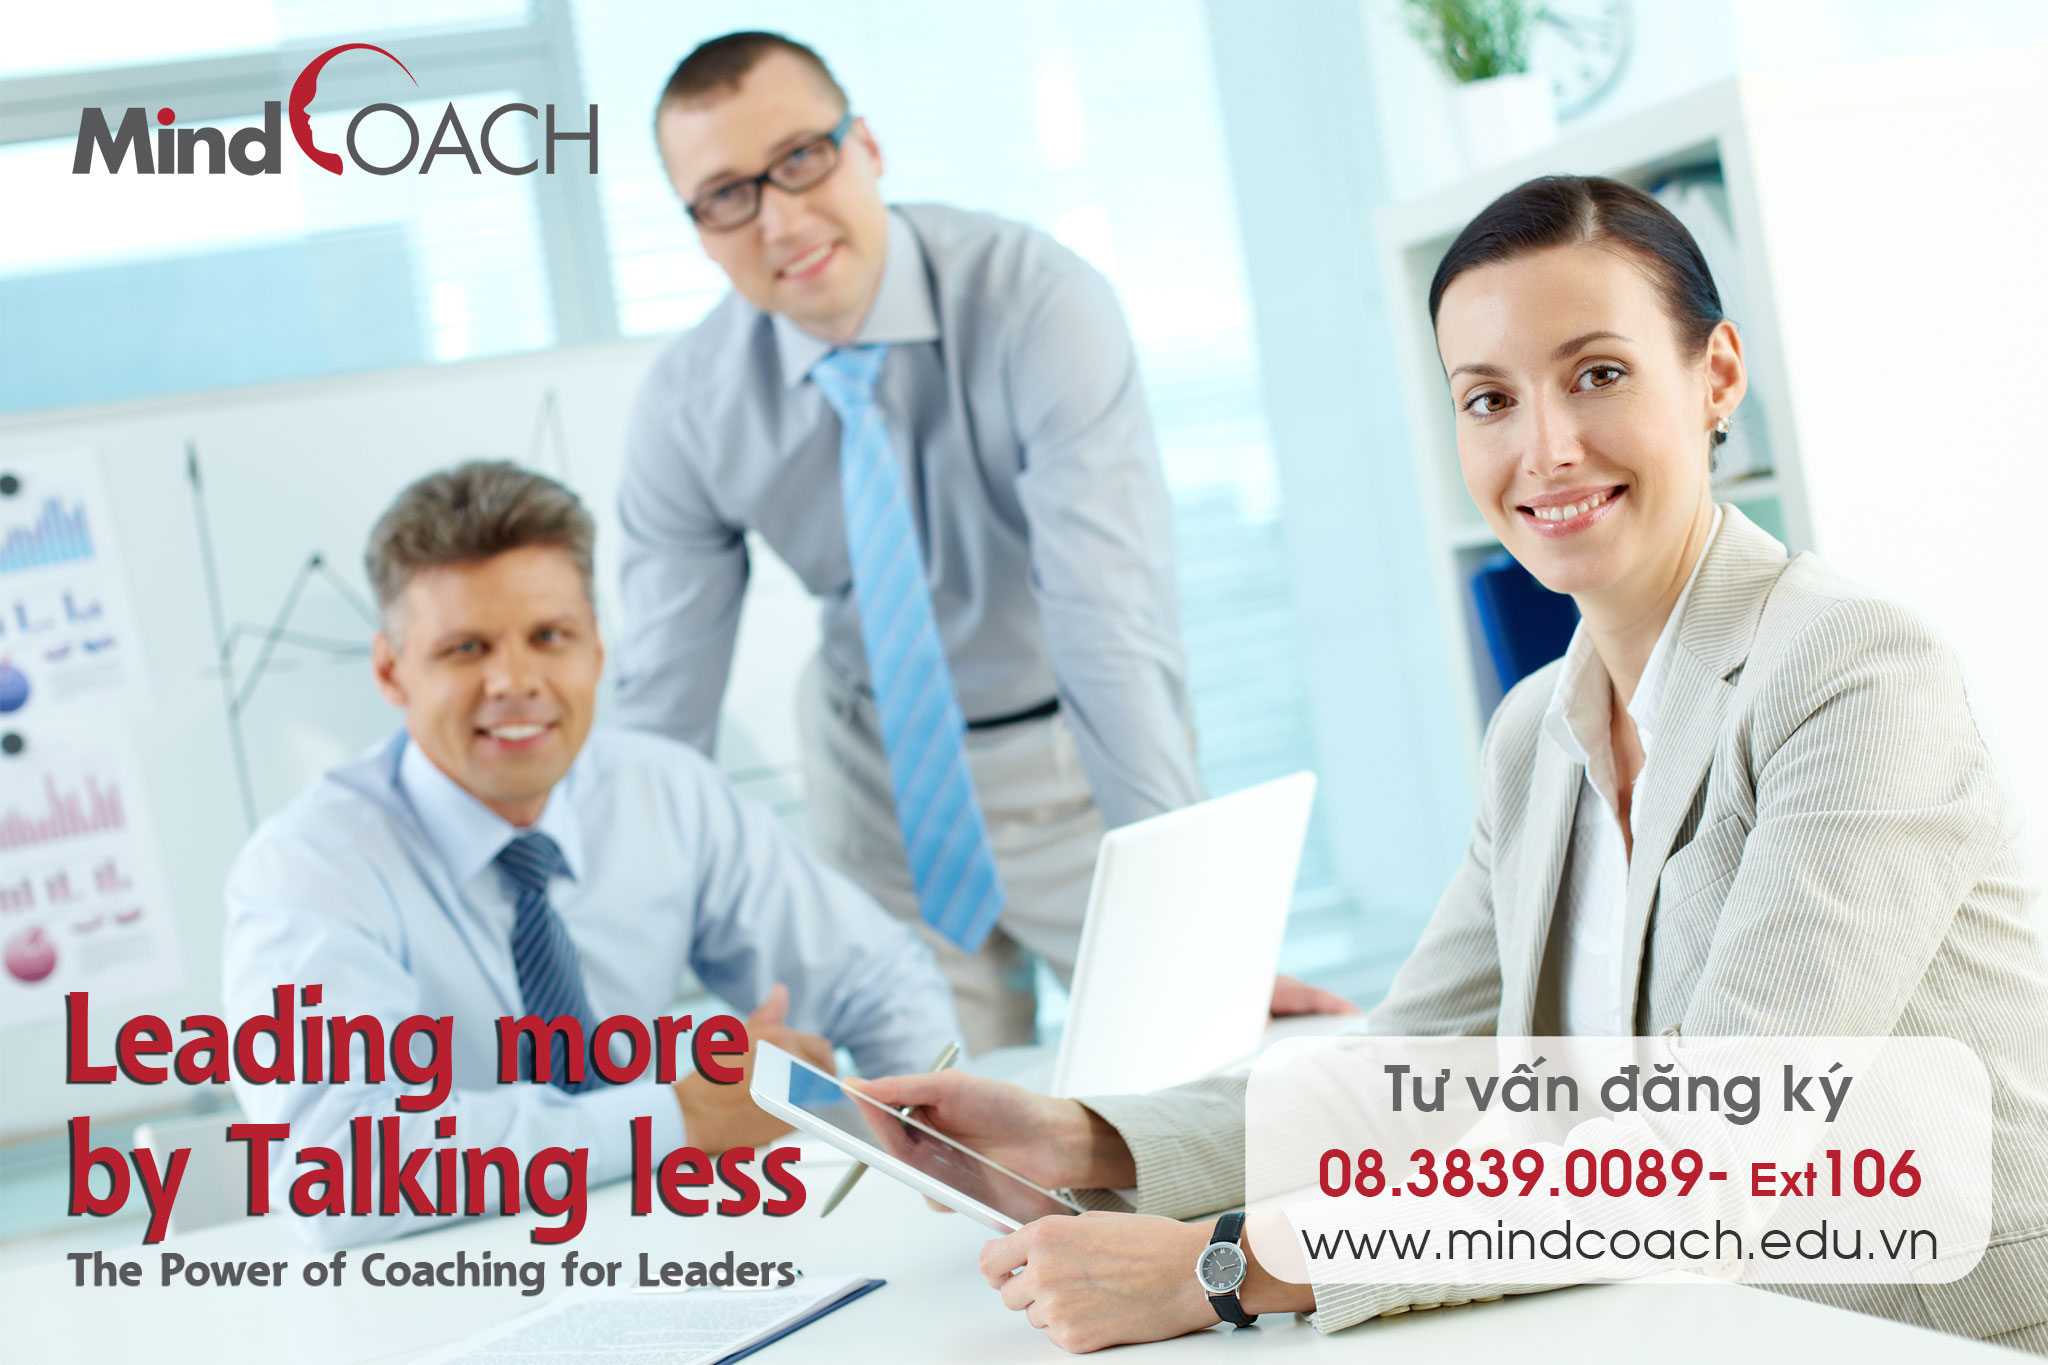 MCVN_coaching-sill-for-Leaders.jpg